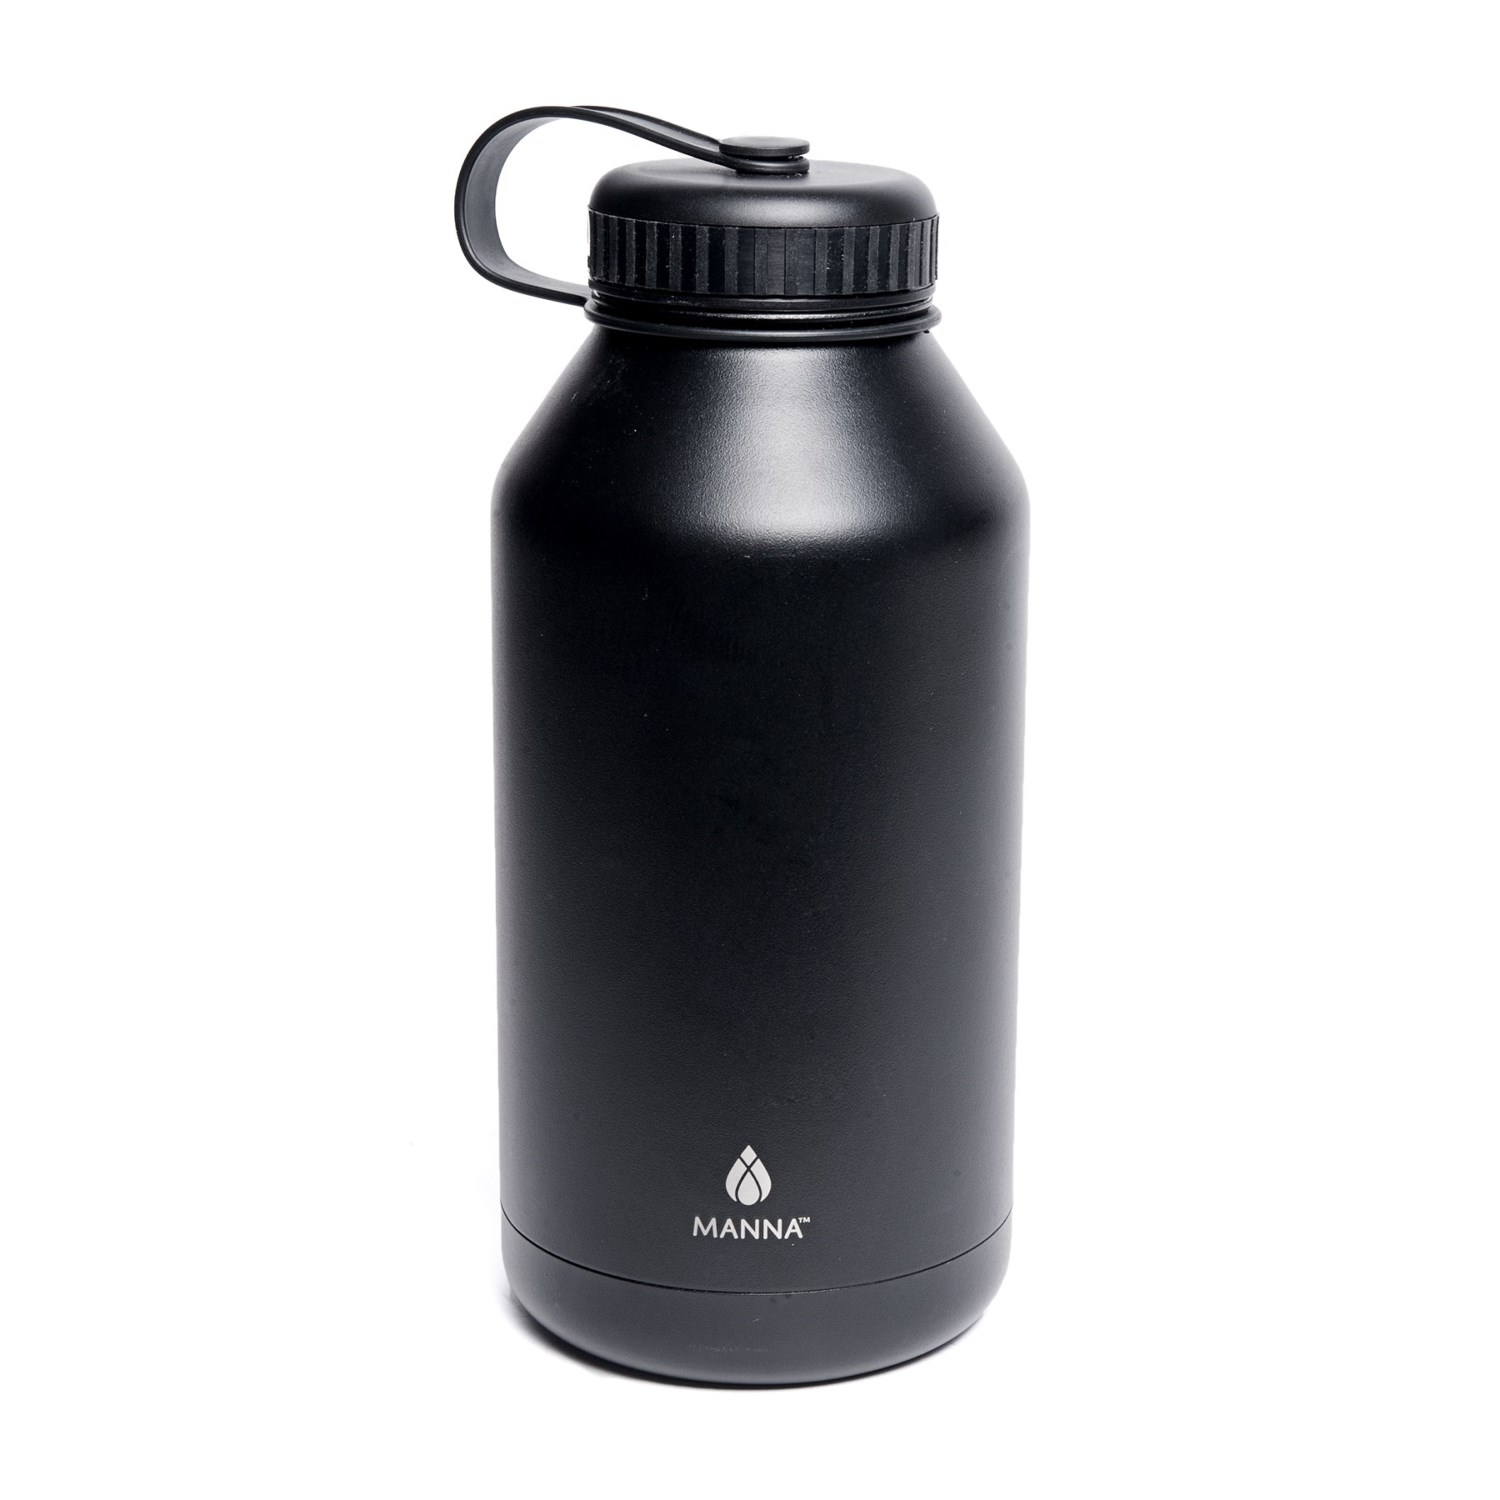 Core bamboo ranger stainless steel growler fl oz